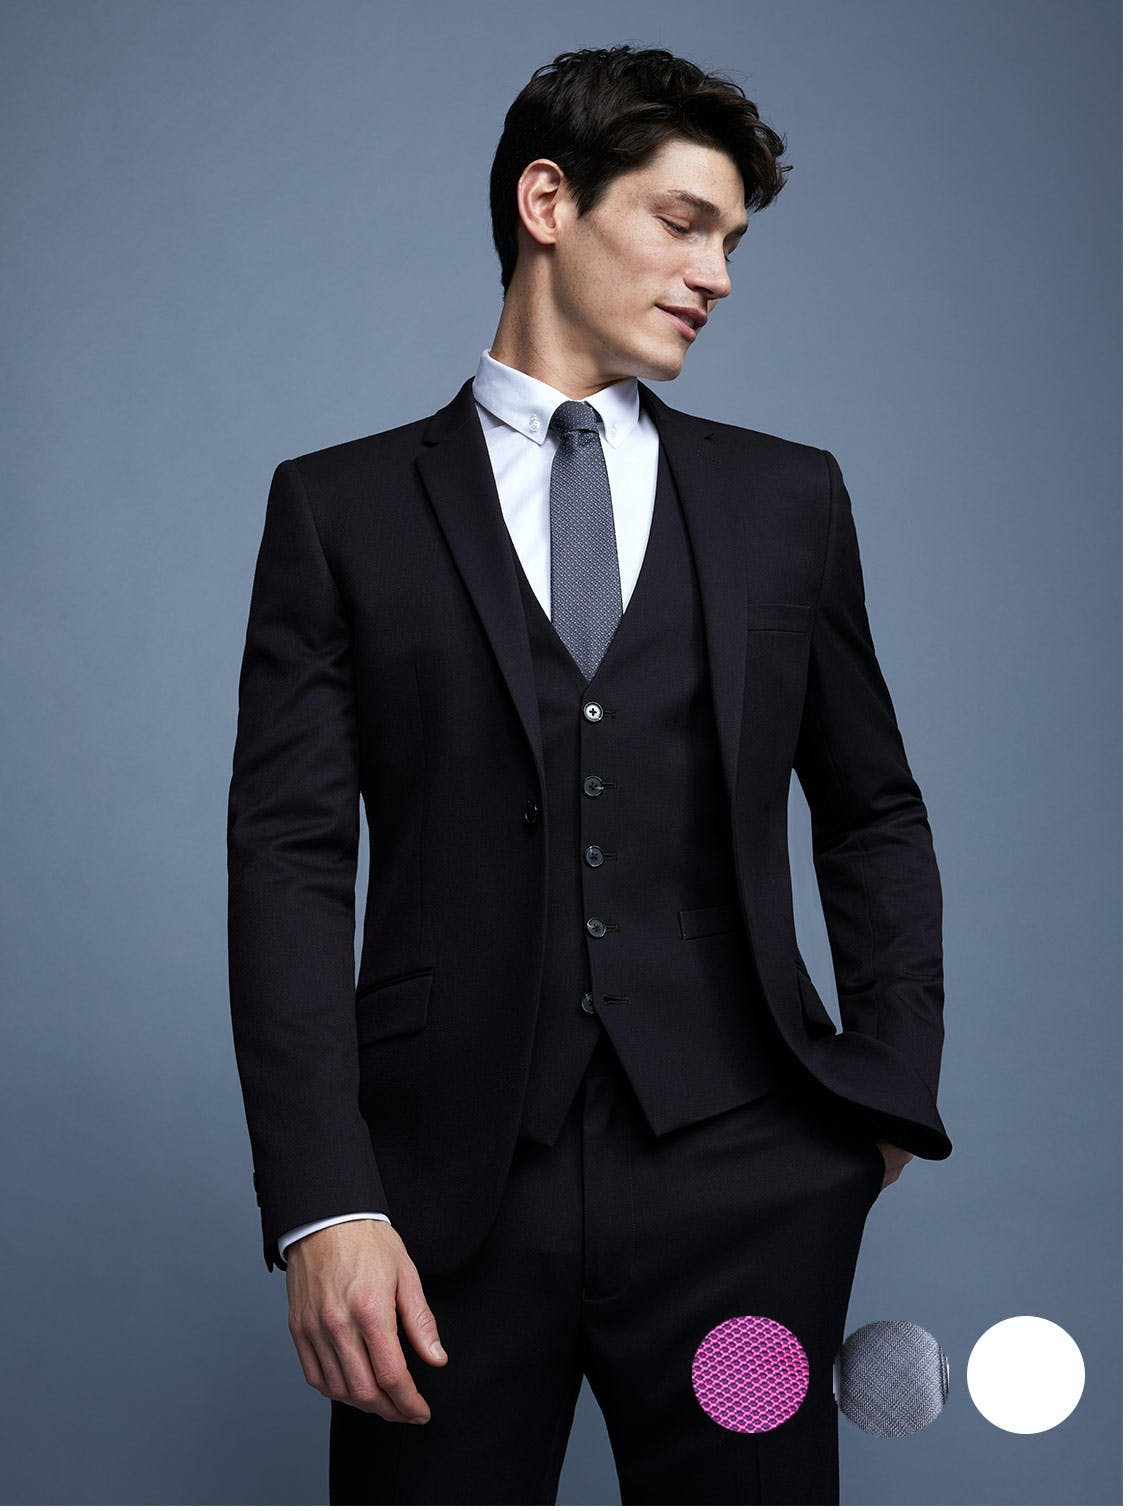 To acquire Shirts what to wear with black suits picture trends